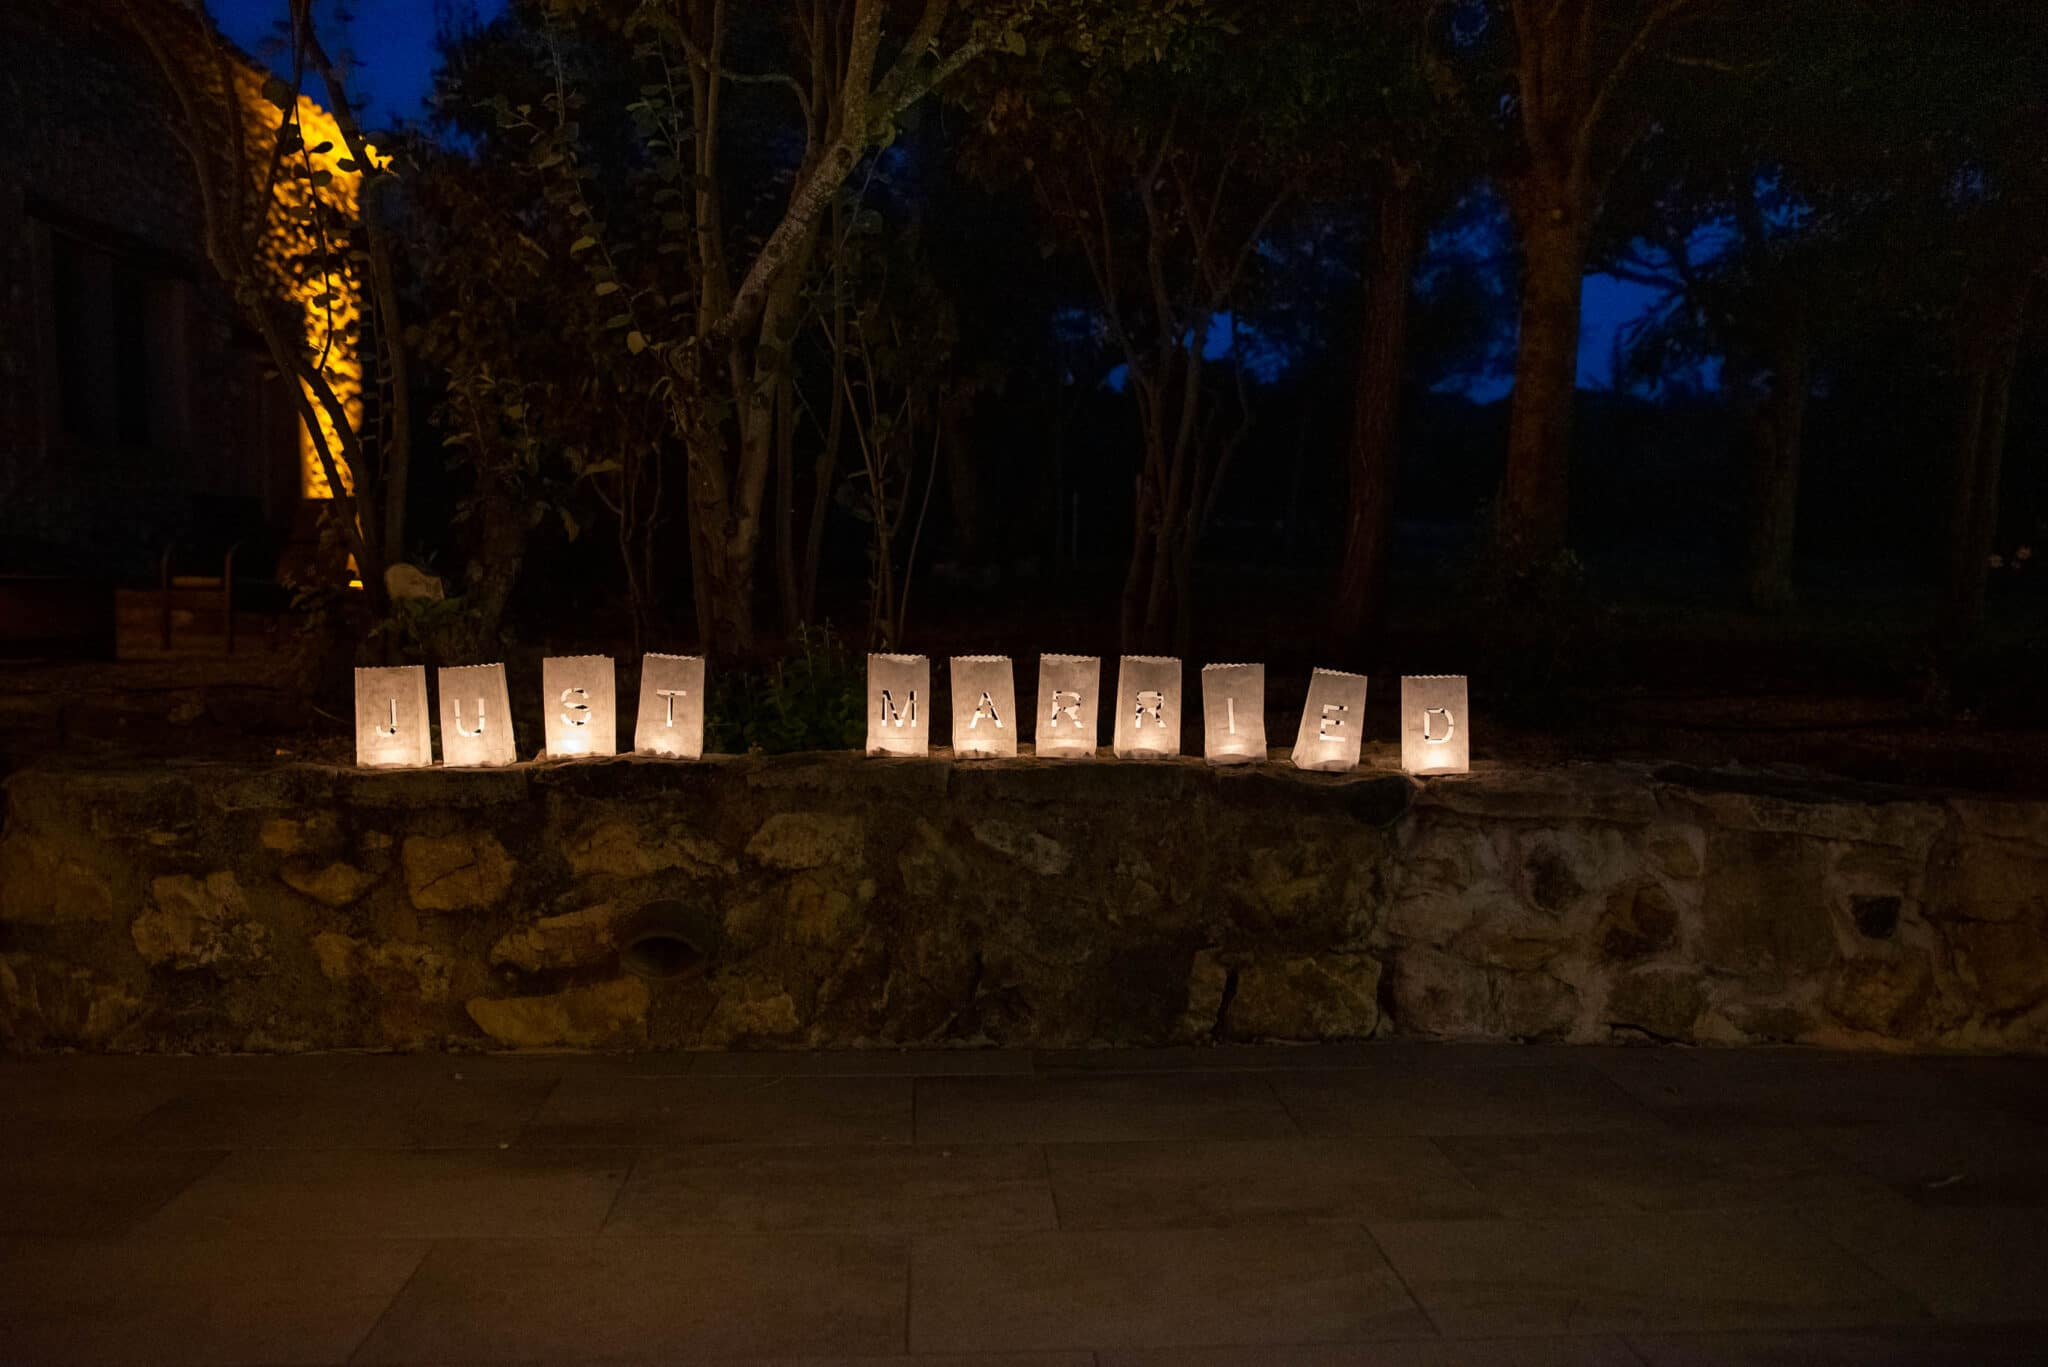 Just Married candle light